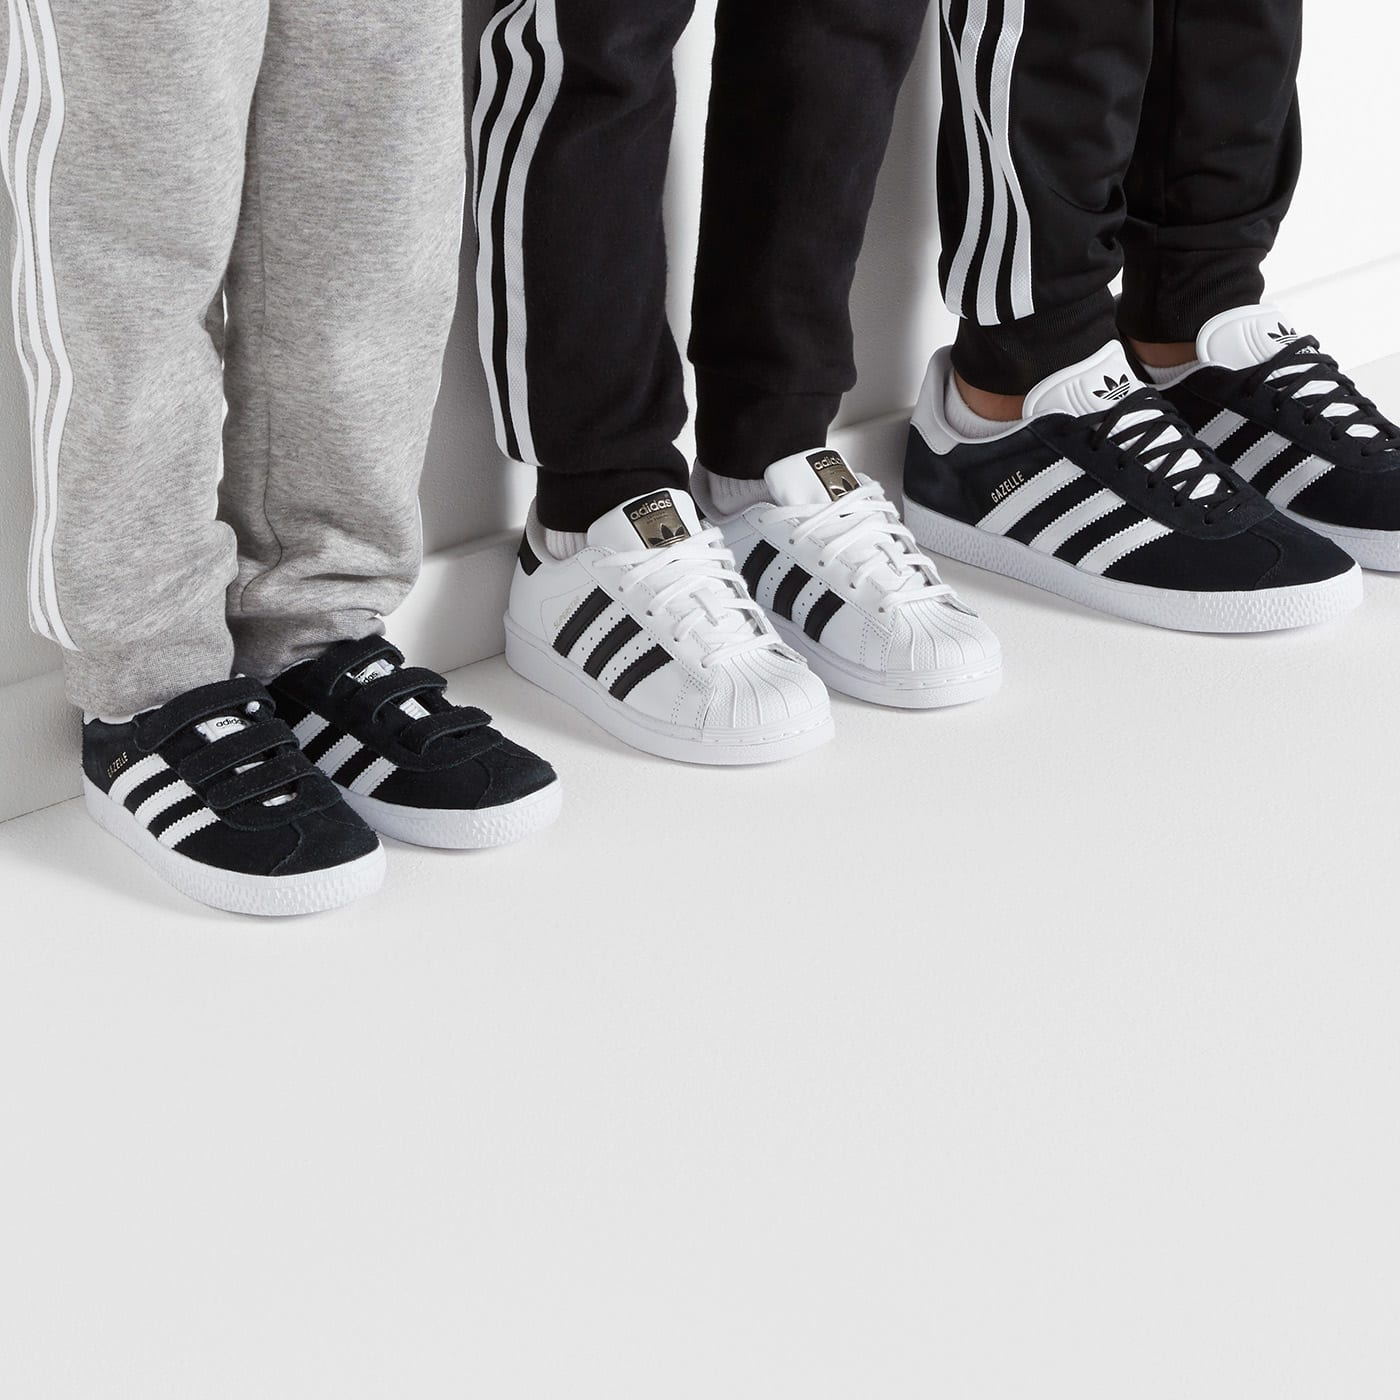 chaussures fille 8 ans adidas